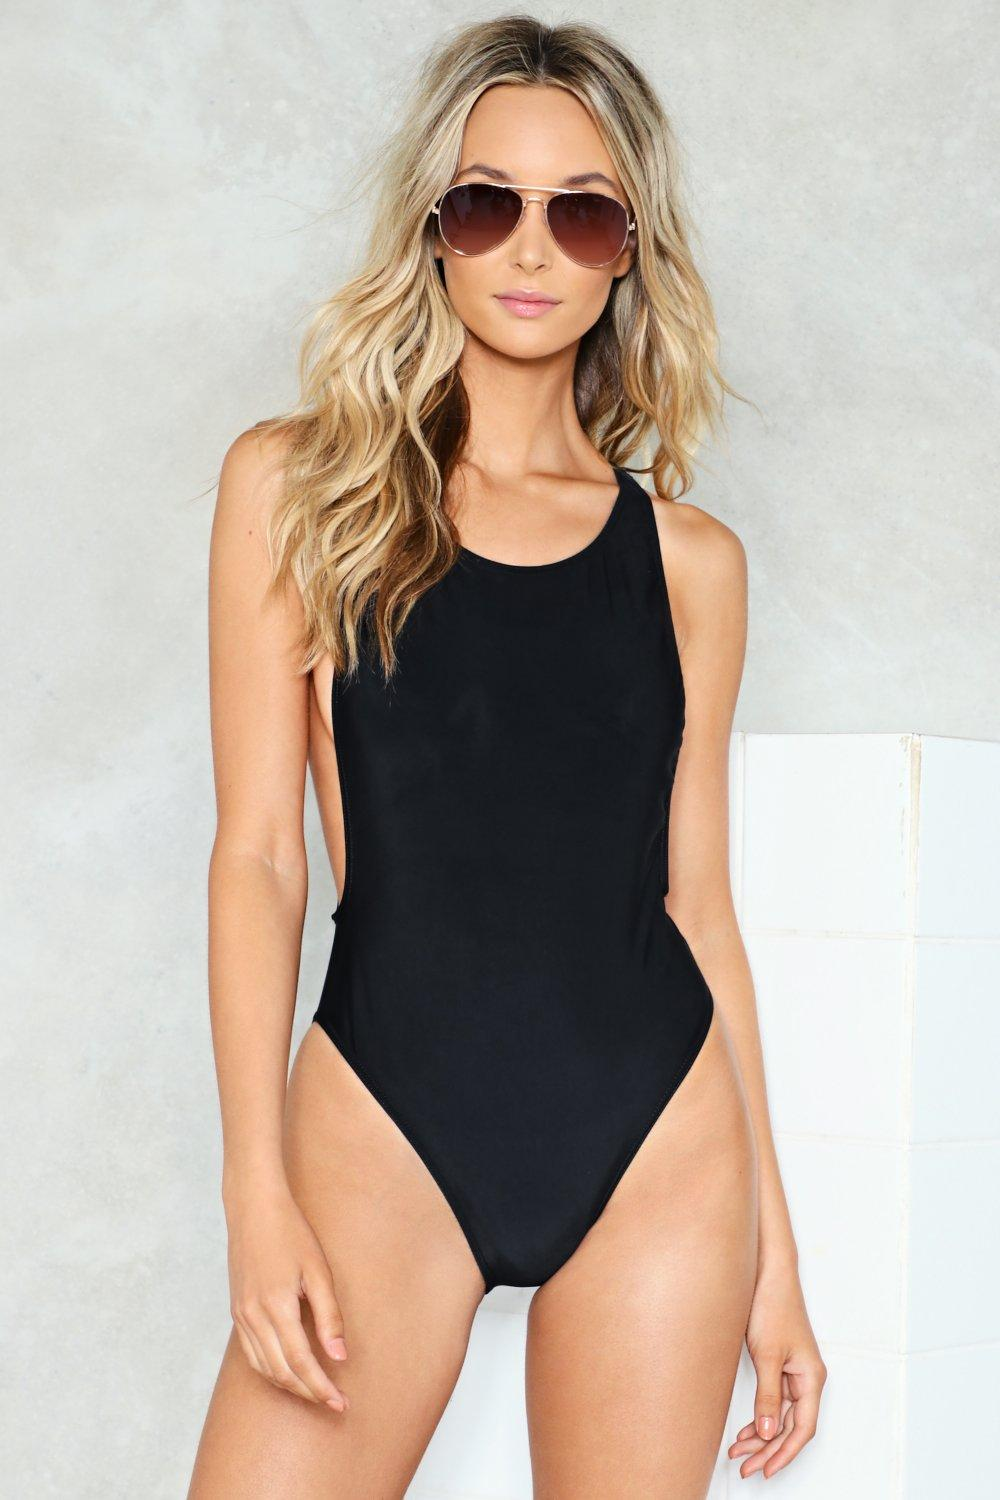 f3e28d8ab75e2 Nasty Gal Alina High-Neck Swimsuit | Shop Clothes at Nasty Gal!